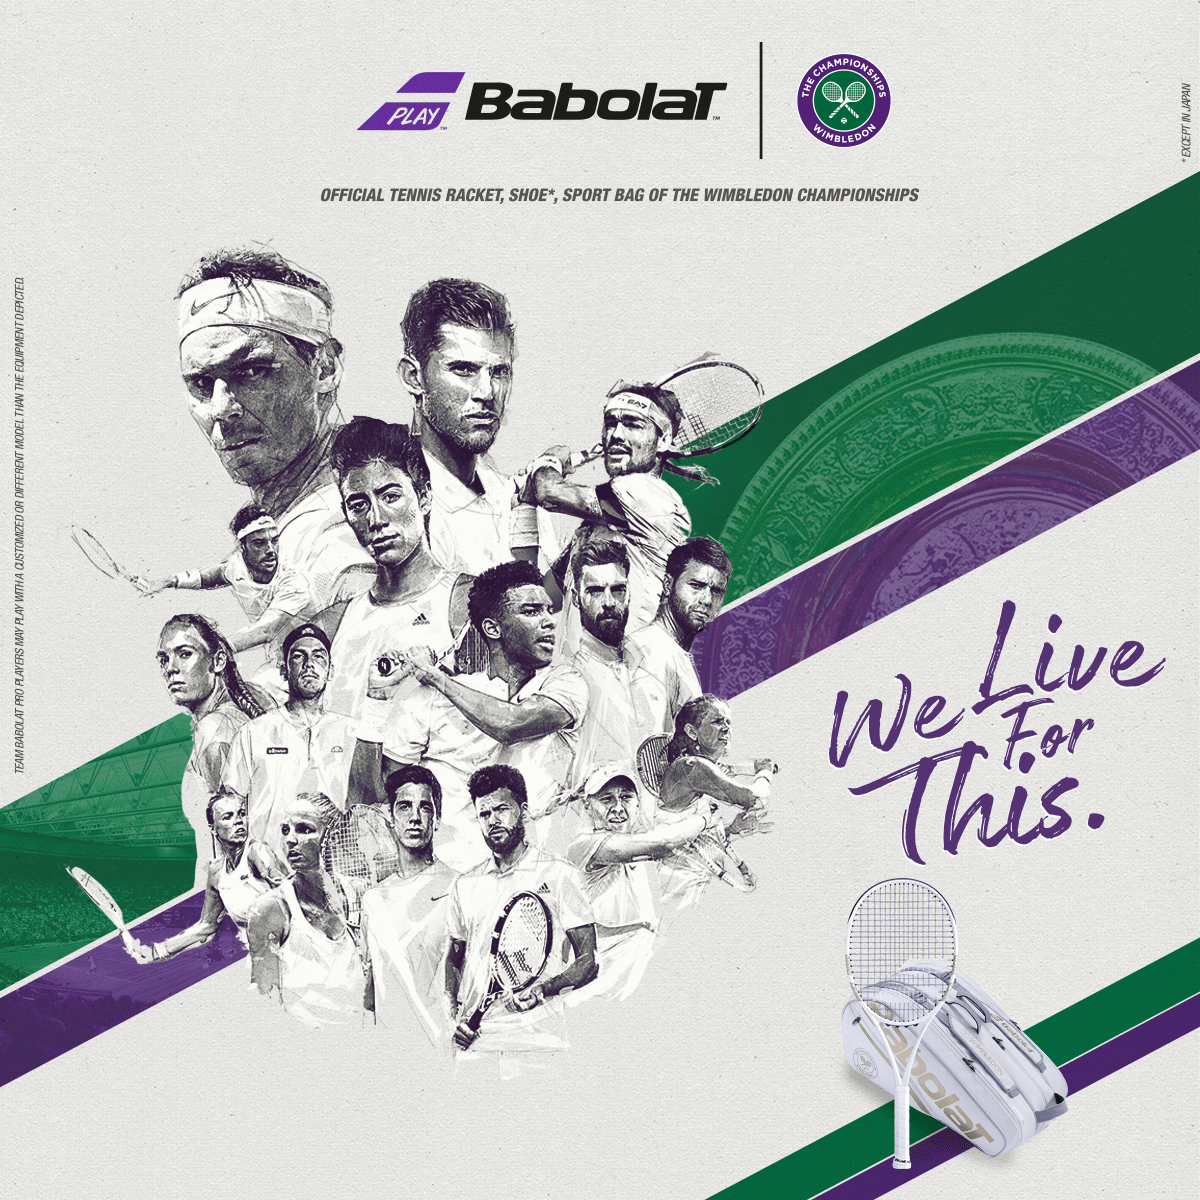 2019 Babolat Grand Slam Racquets, Bags and Accessories